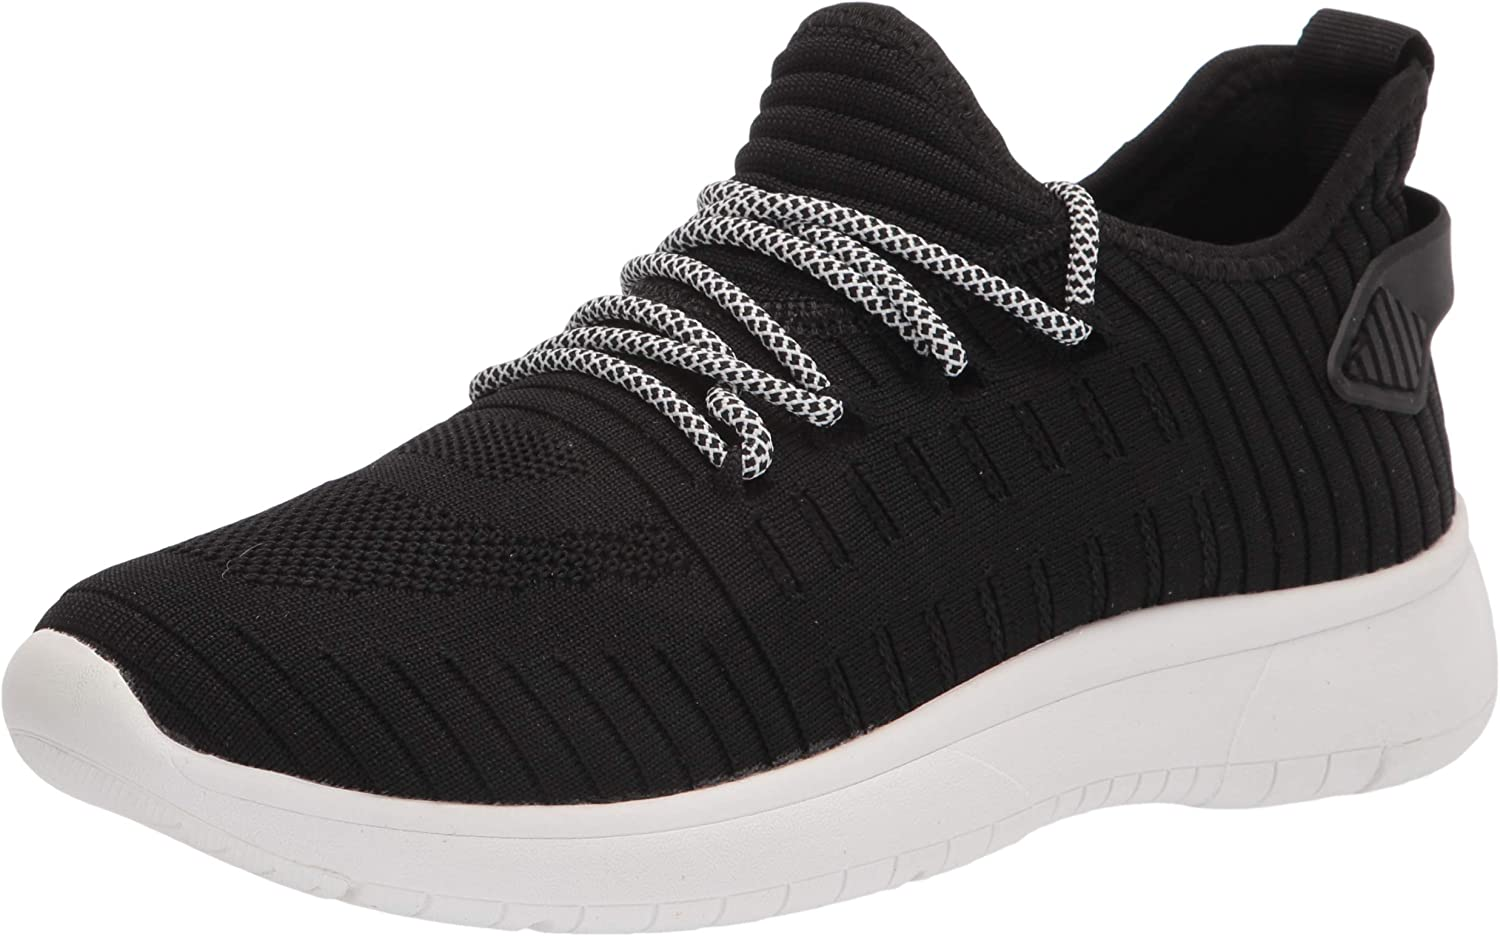 Blondo Max Large-scale sale 44% OFF Waterproof Womens Kamie Lace Up Sneakers Casual - Shoes B